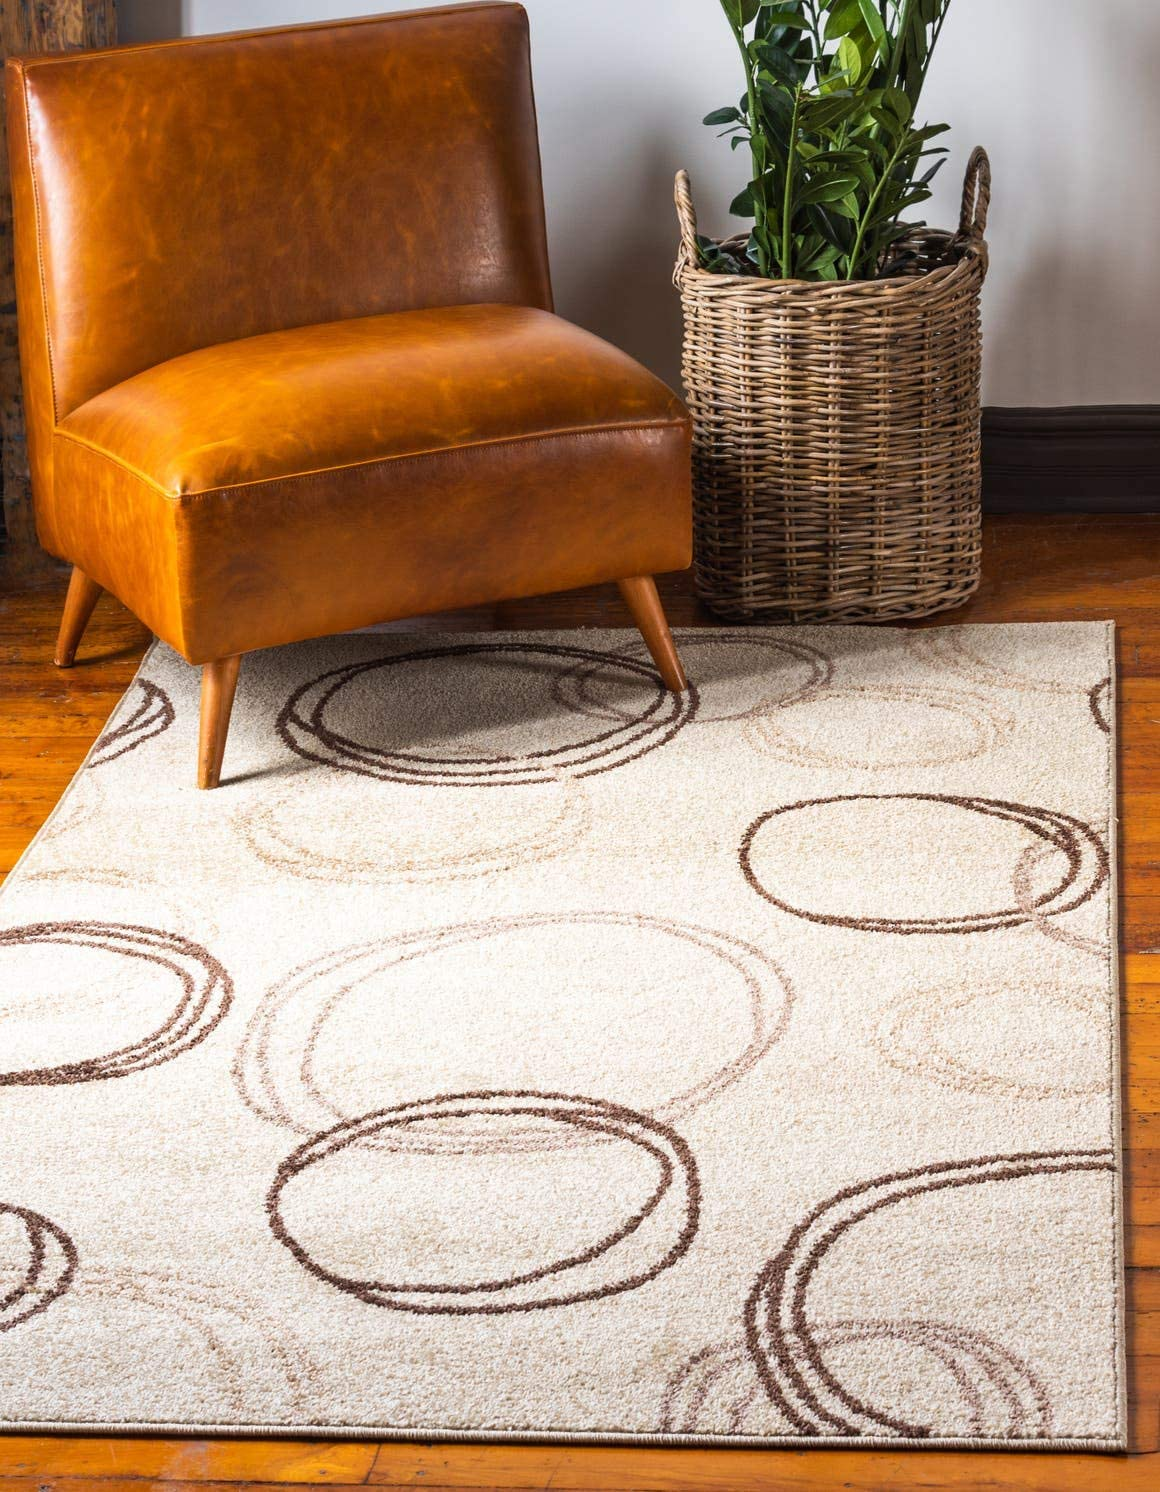 Unique Loom Autumn Collection Casual Circles Warm Toned Beige Area Rug 9 0 x 12 0